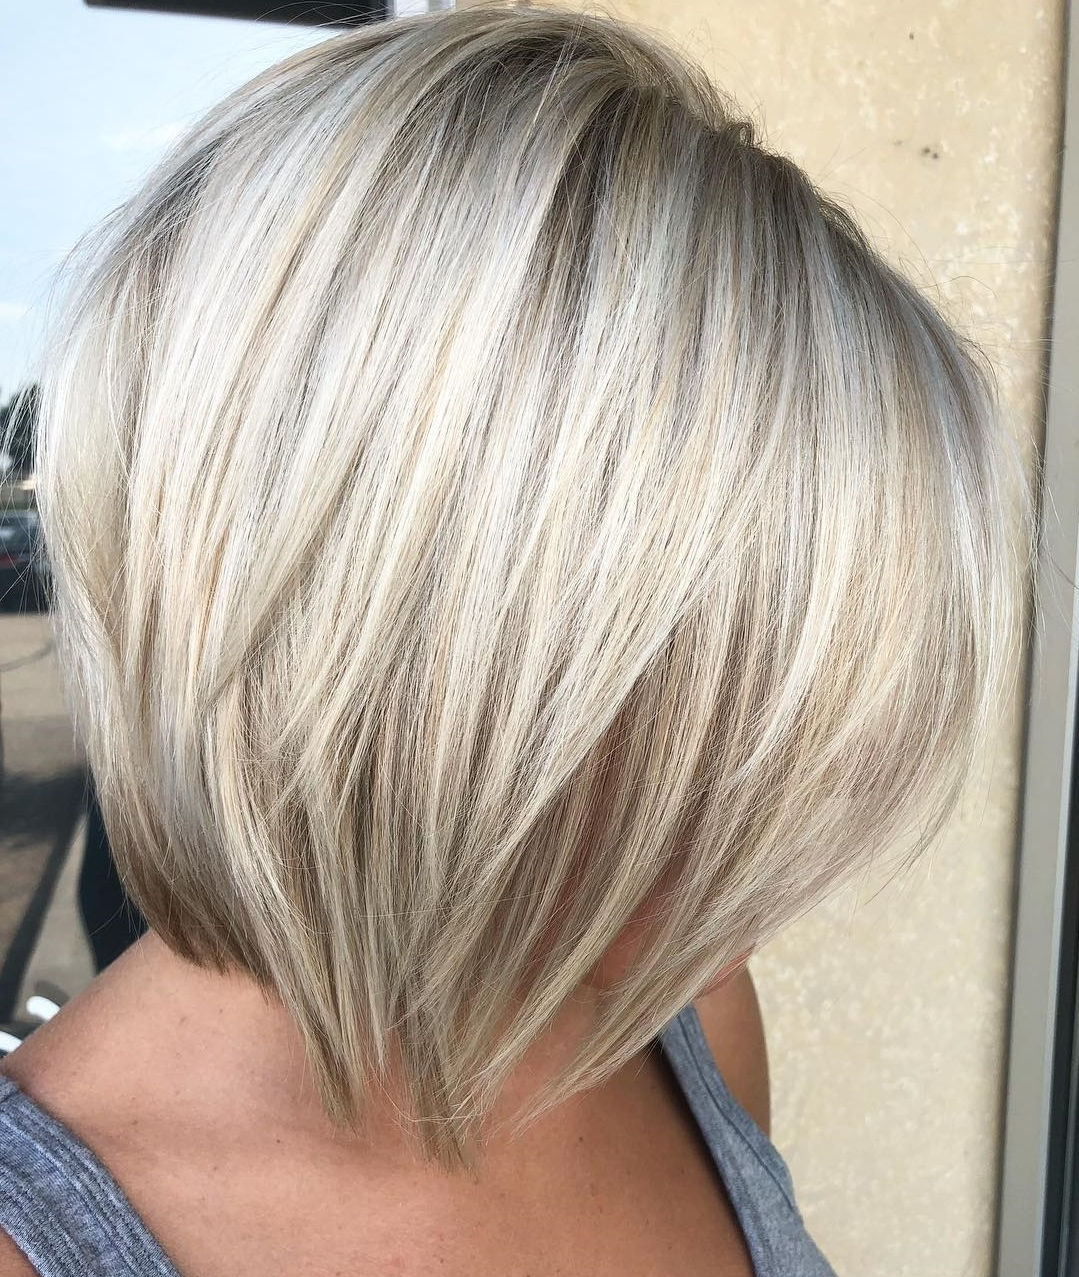 45 Short Hairstyles For Fine Hair To Rock In 2019 Throughout Asymmetrical Shaggy Bob Hairstyles (View 7 of 20)